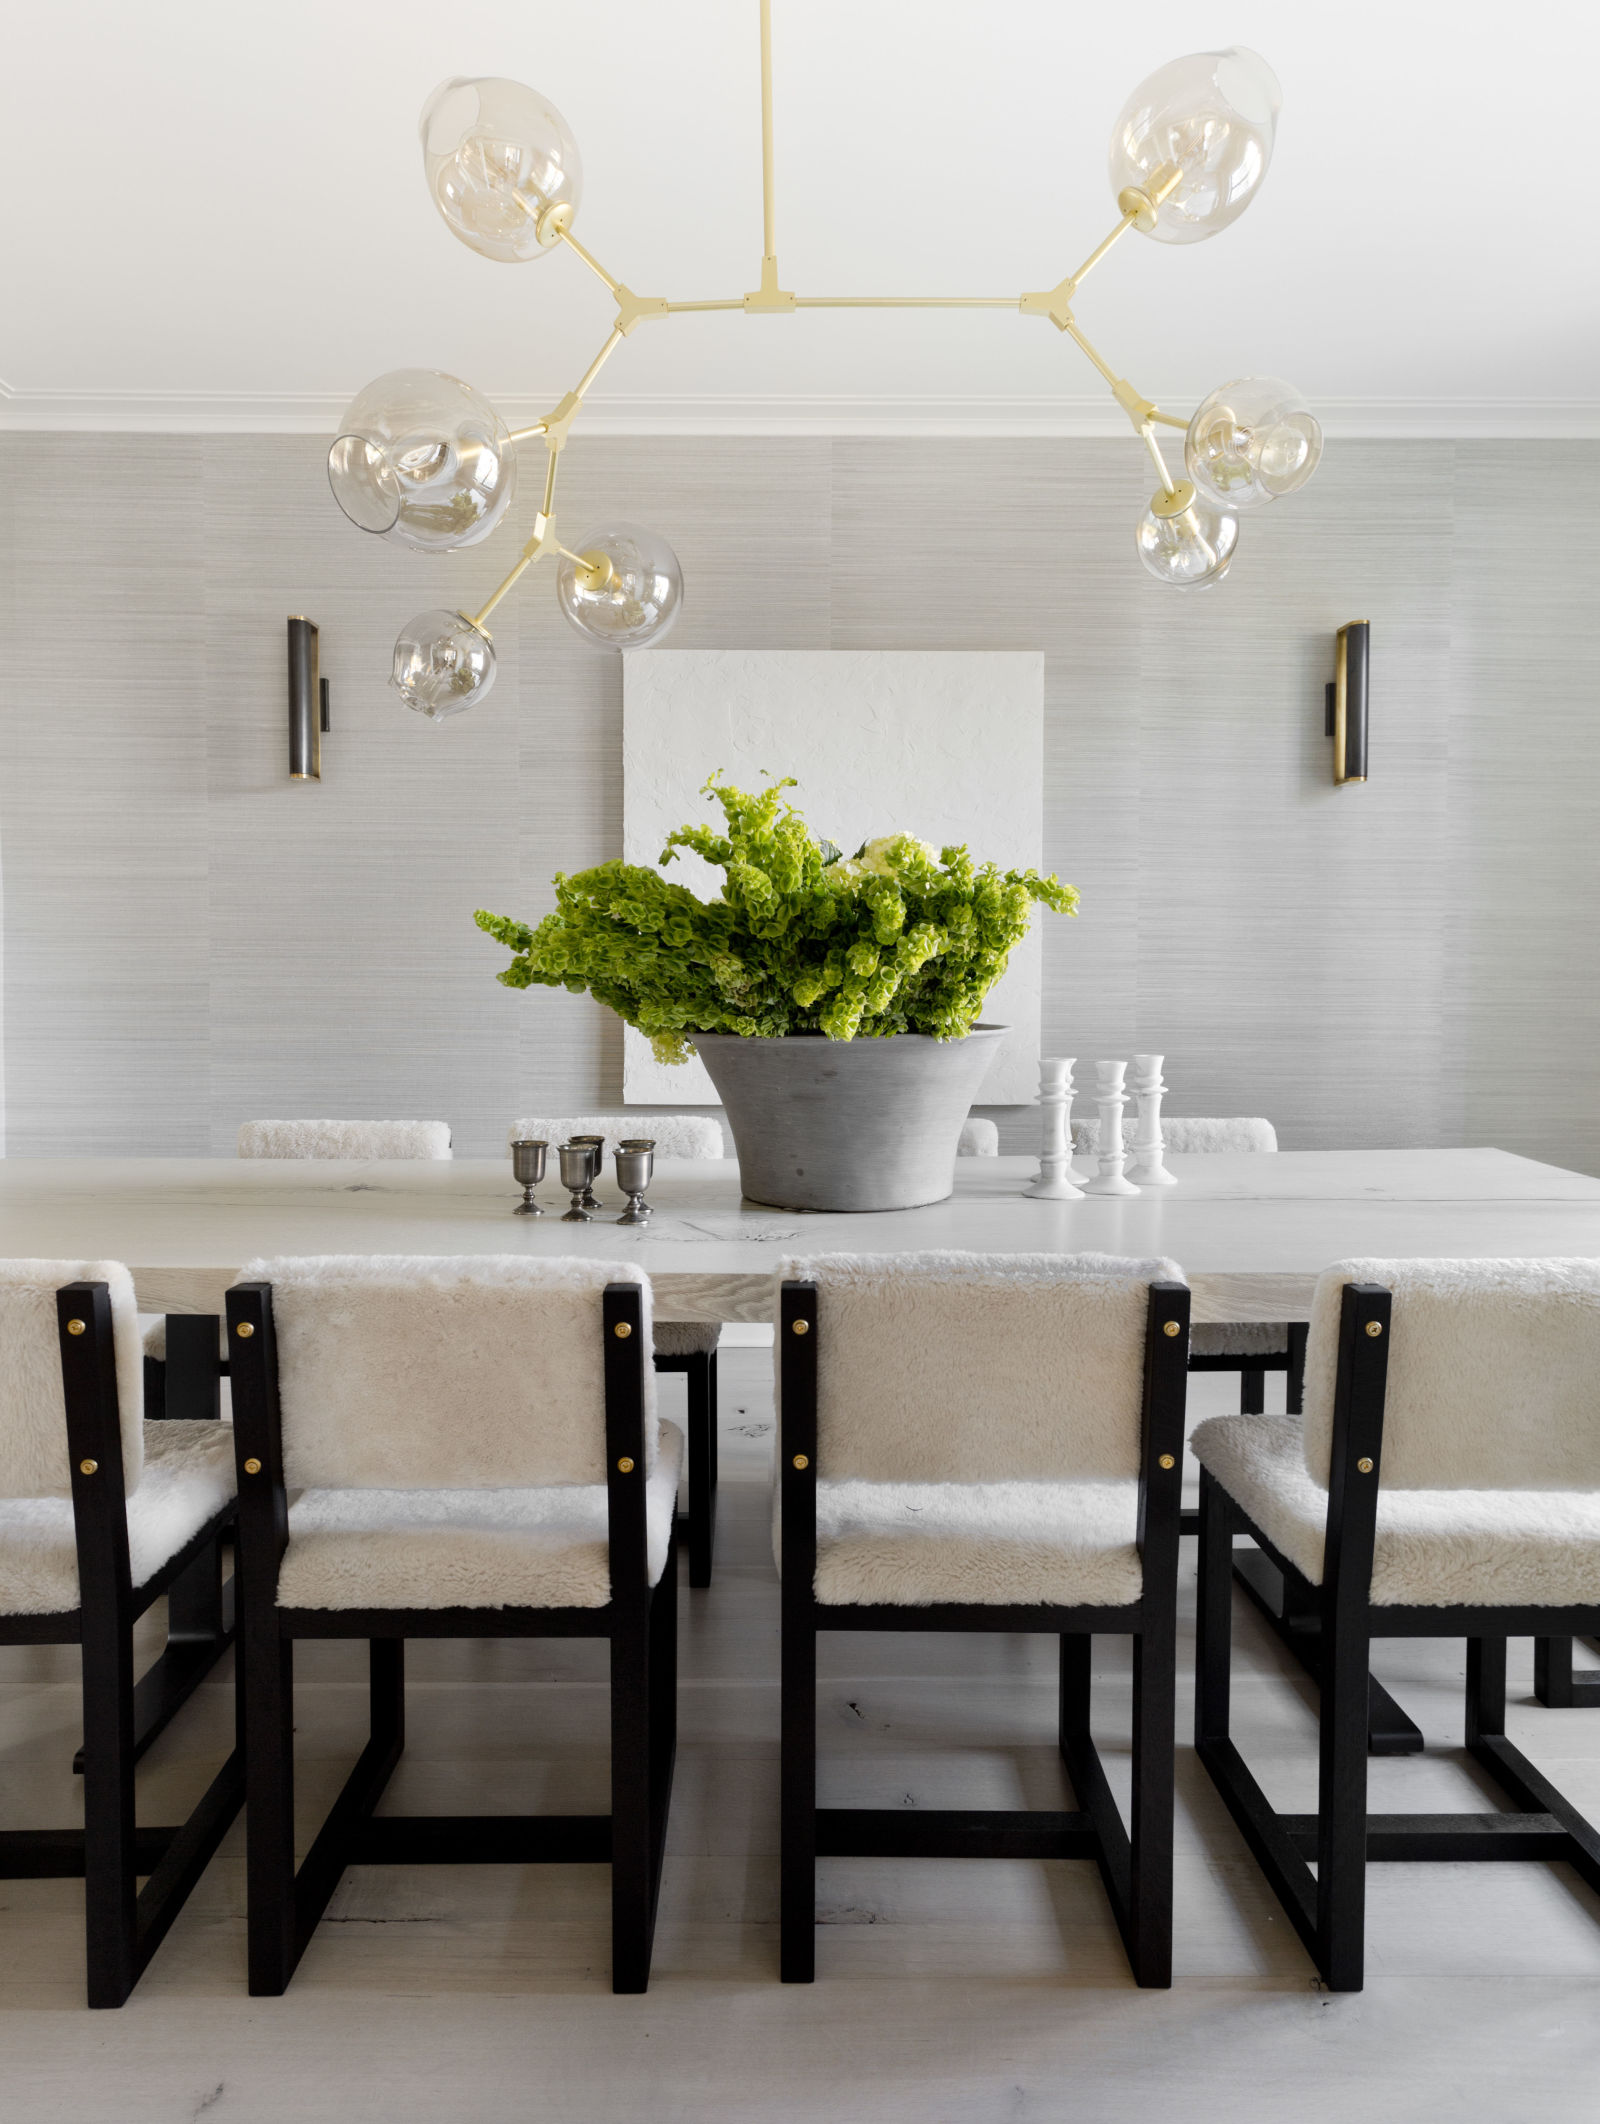 5 incredible interior design tips by elle decor for a chic for Elle decor best dining rooms